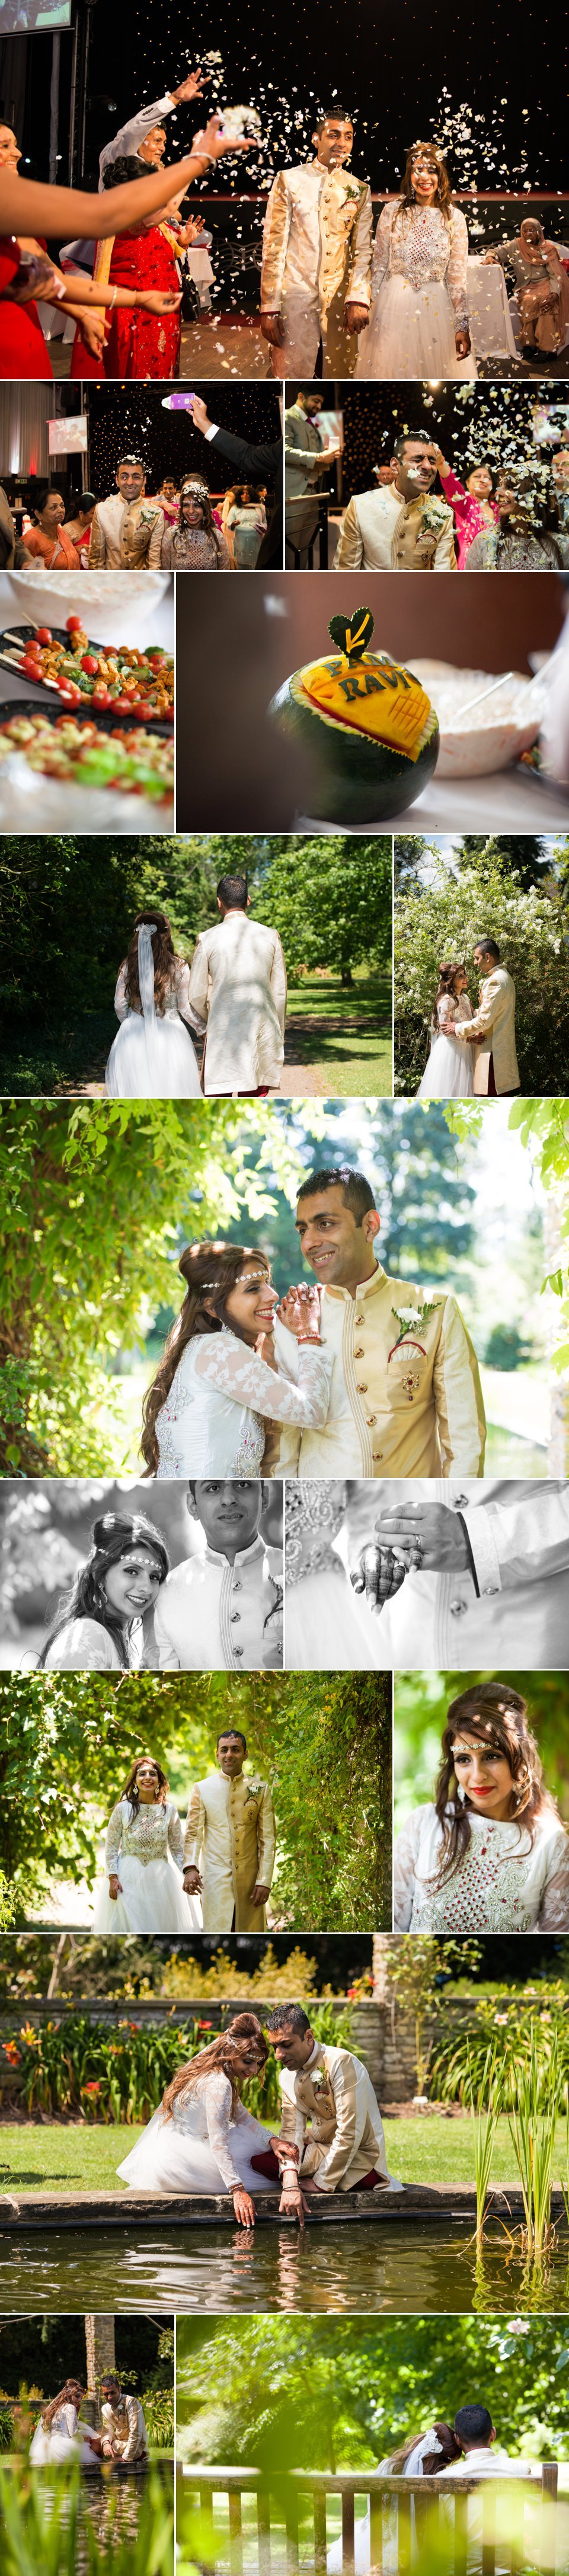 Wedding Photography And Video At Athena Banqueting Suite Leicester Pam Amp Ravi Wedding